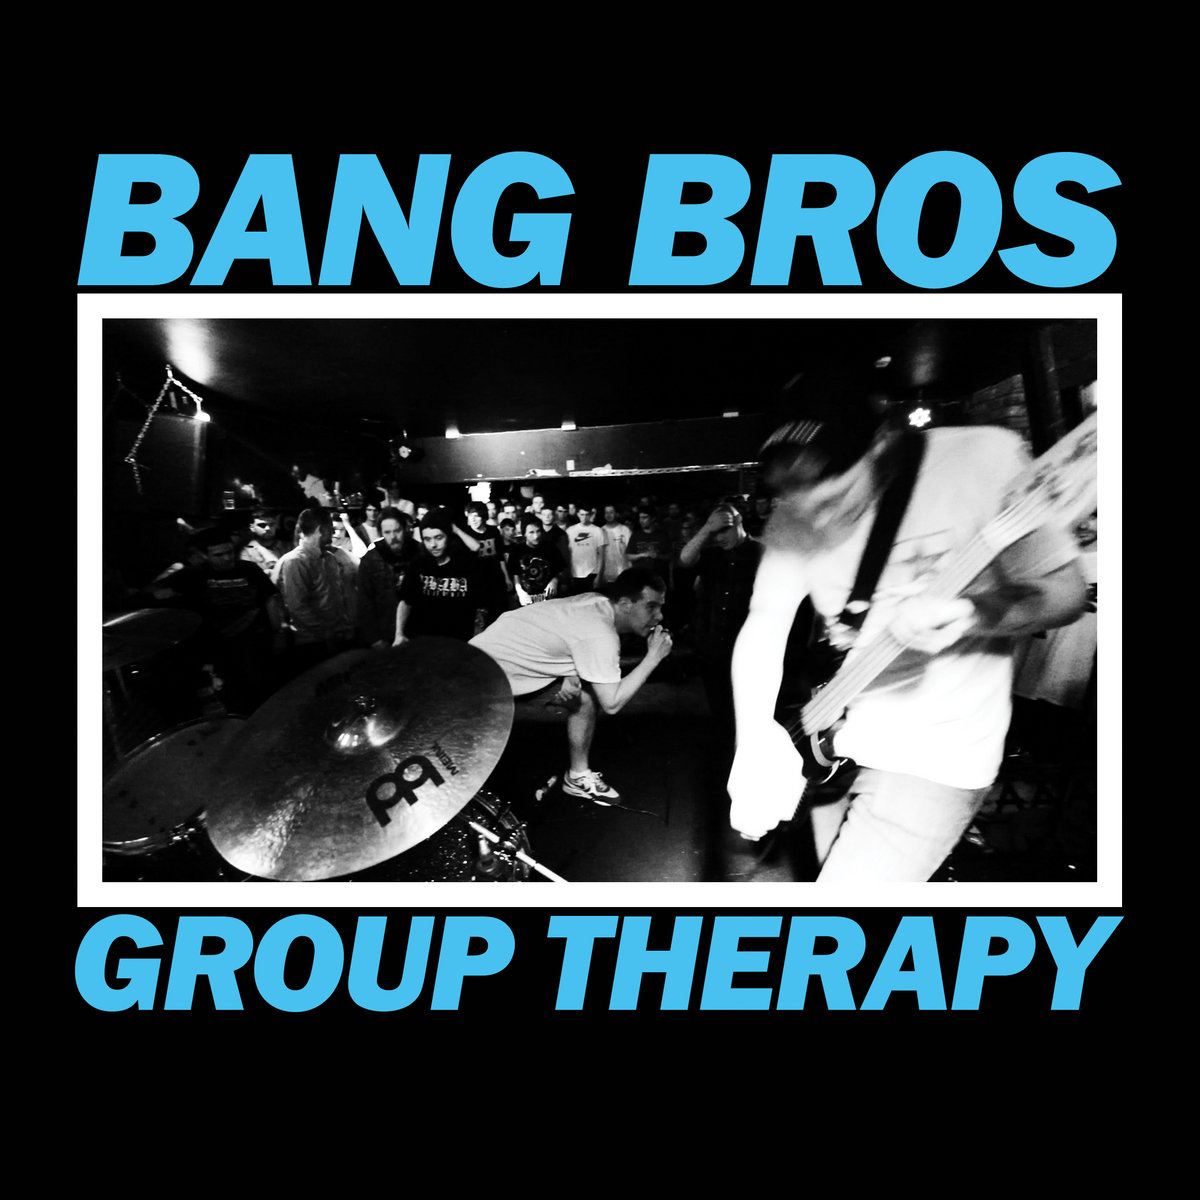 Bangg Bros group therapy | bang bros